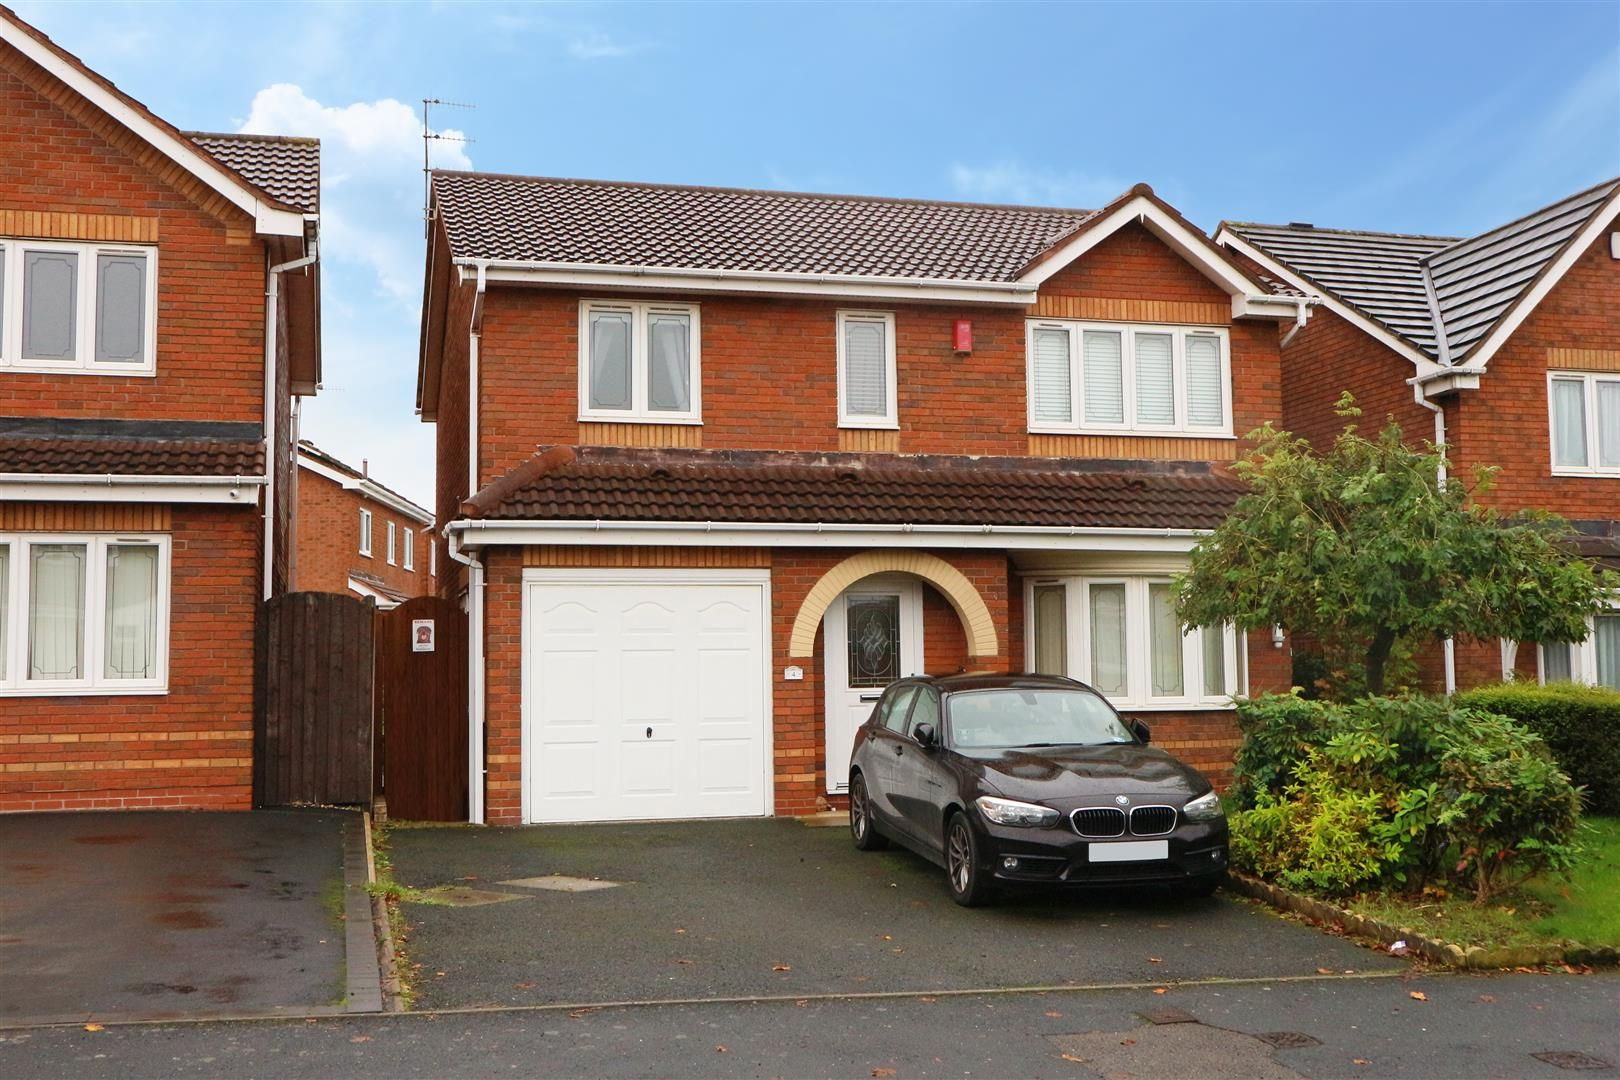 4 bed detached for sale  - Property Image 13